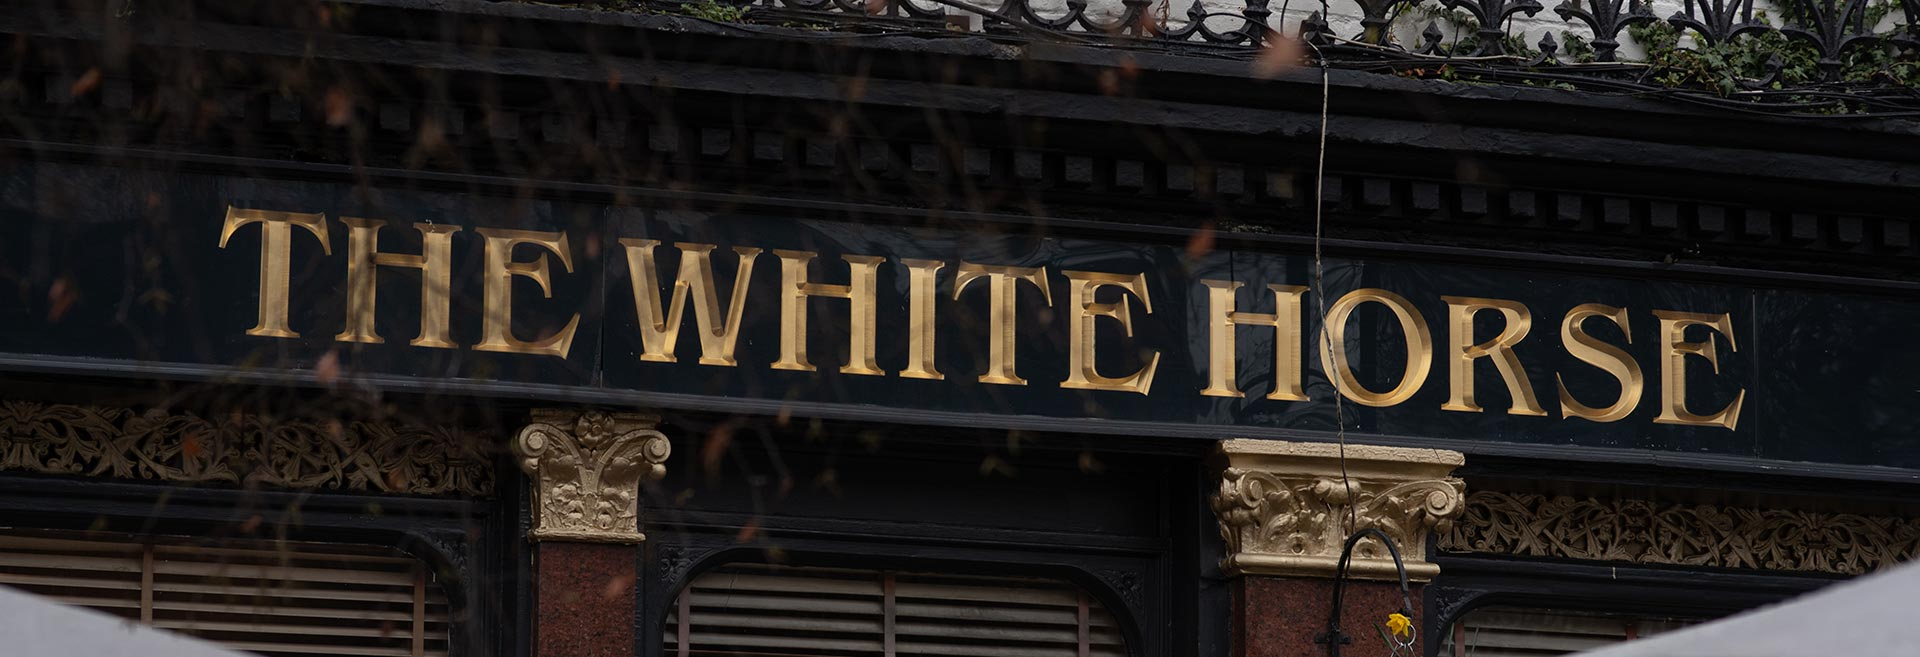 The Story of The White Horse